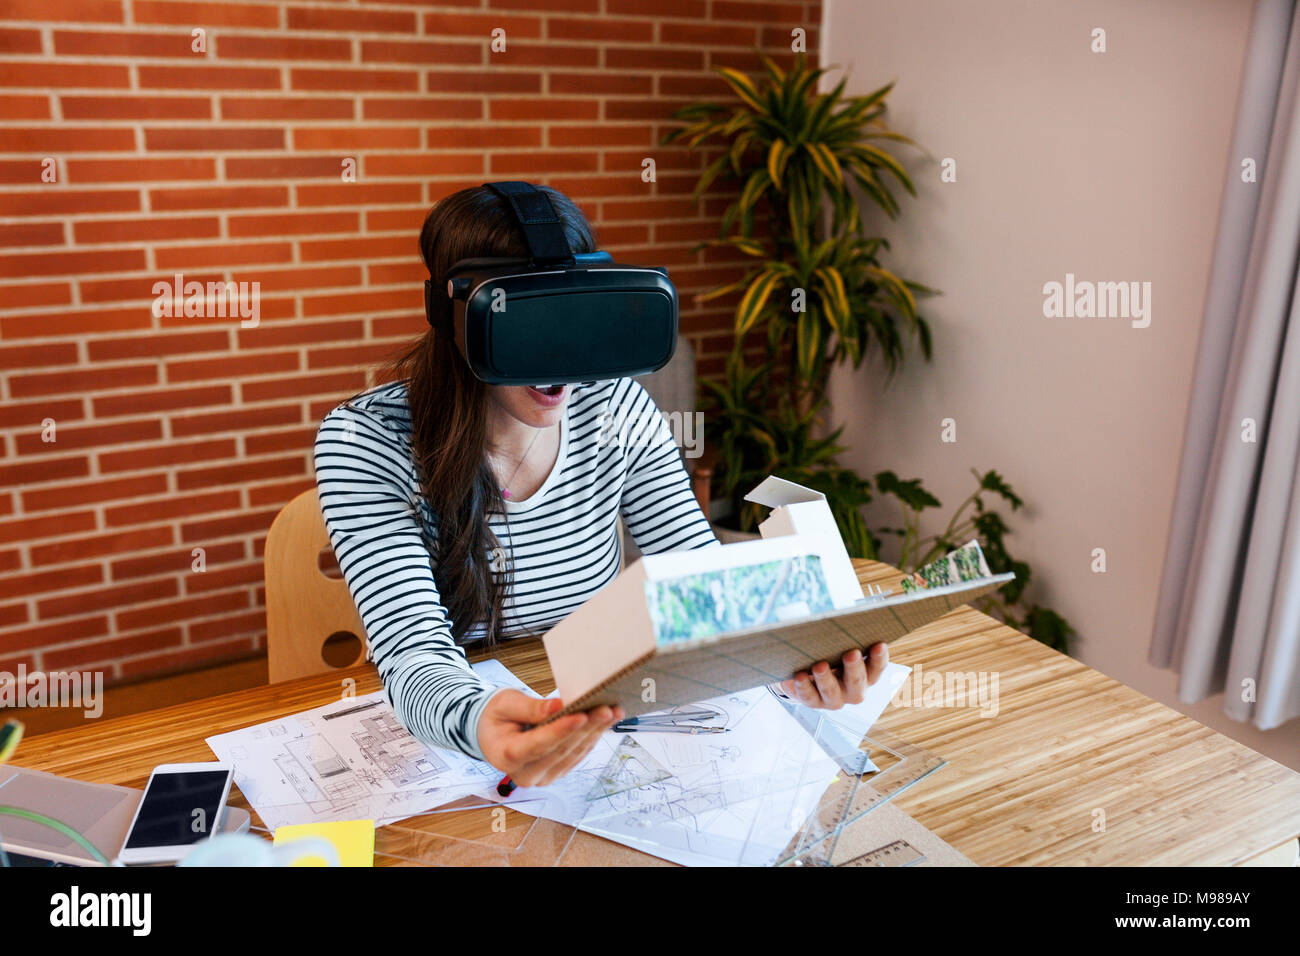 Young woman working in architecture office, looking at model with VR goggles - Stock Image